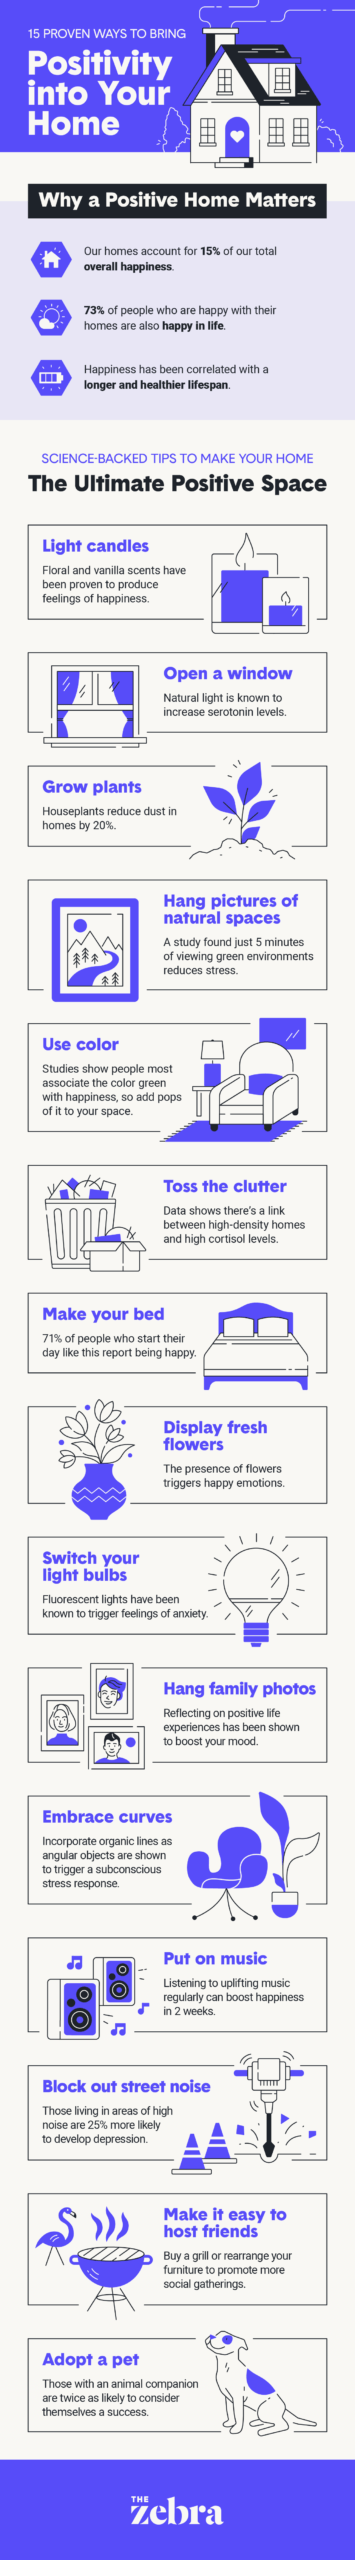 How to Bring Positivity into Your Home